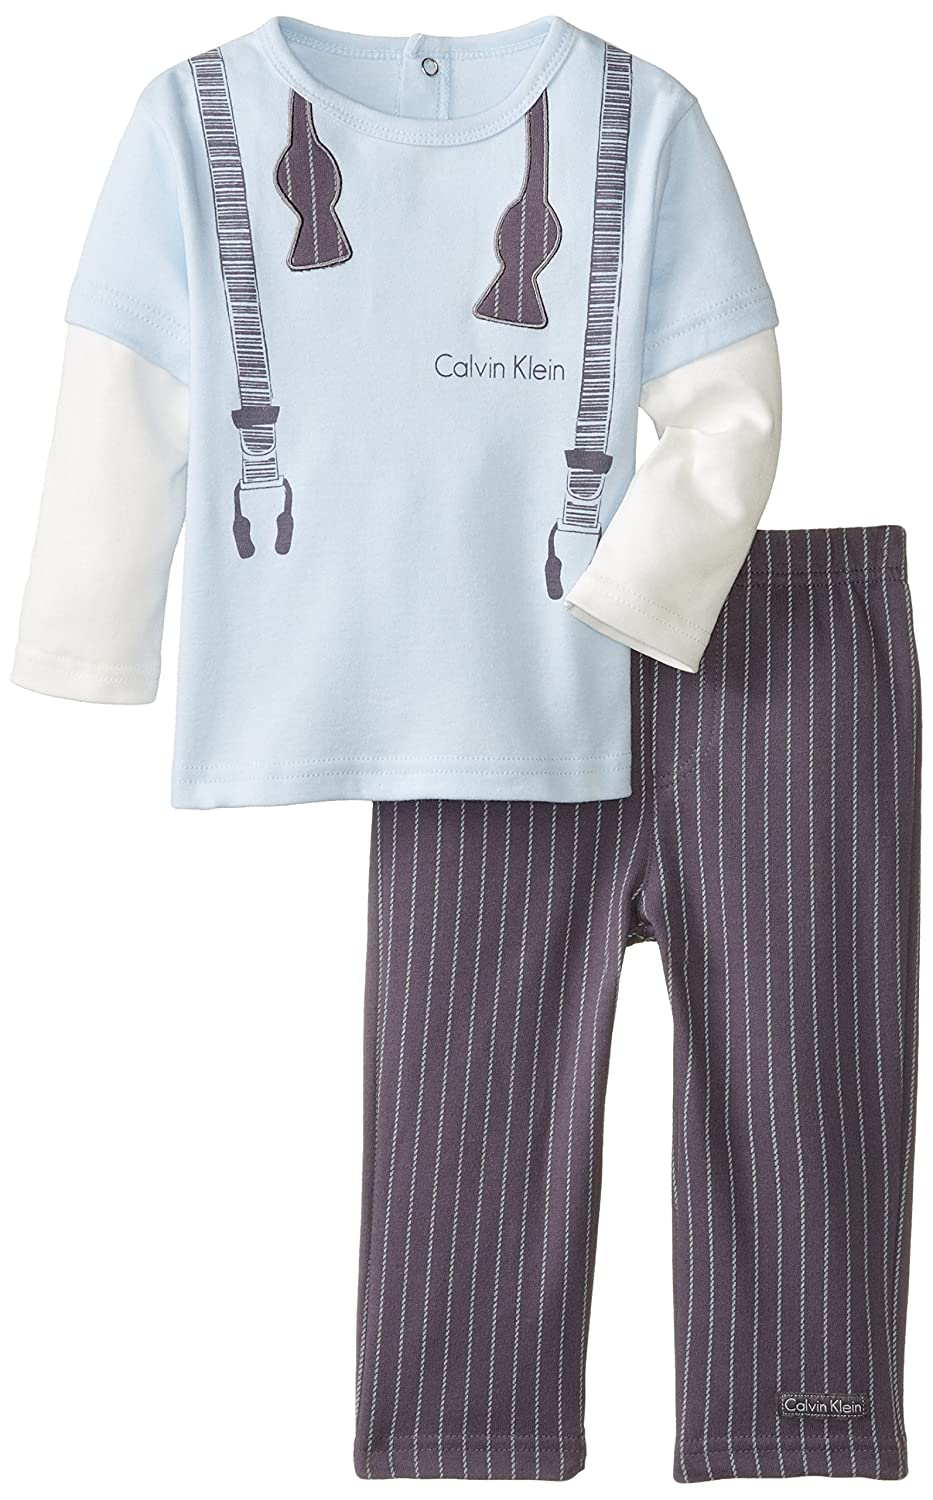 Calvin Klein Baby Boys' Twofer Long Sleeve Tee with Pull On Pants skylake рубашка для мальчика premium skylake